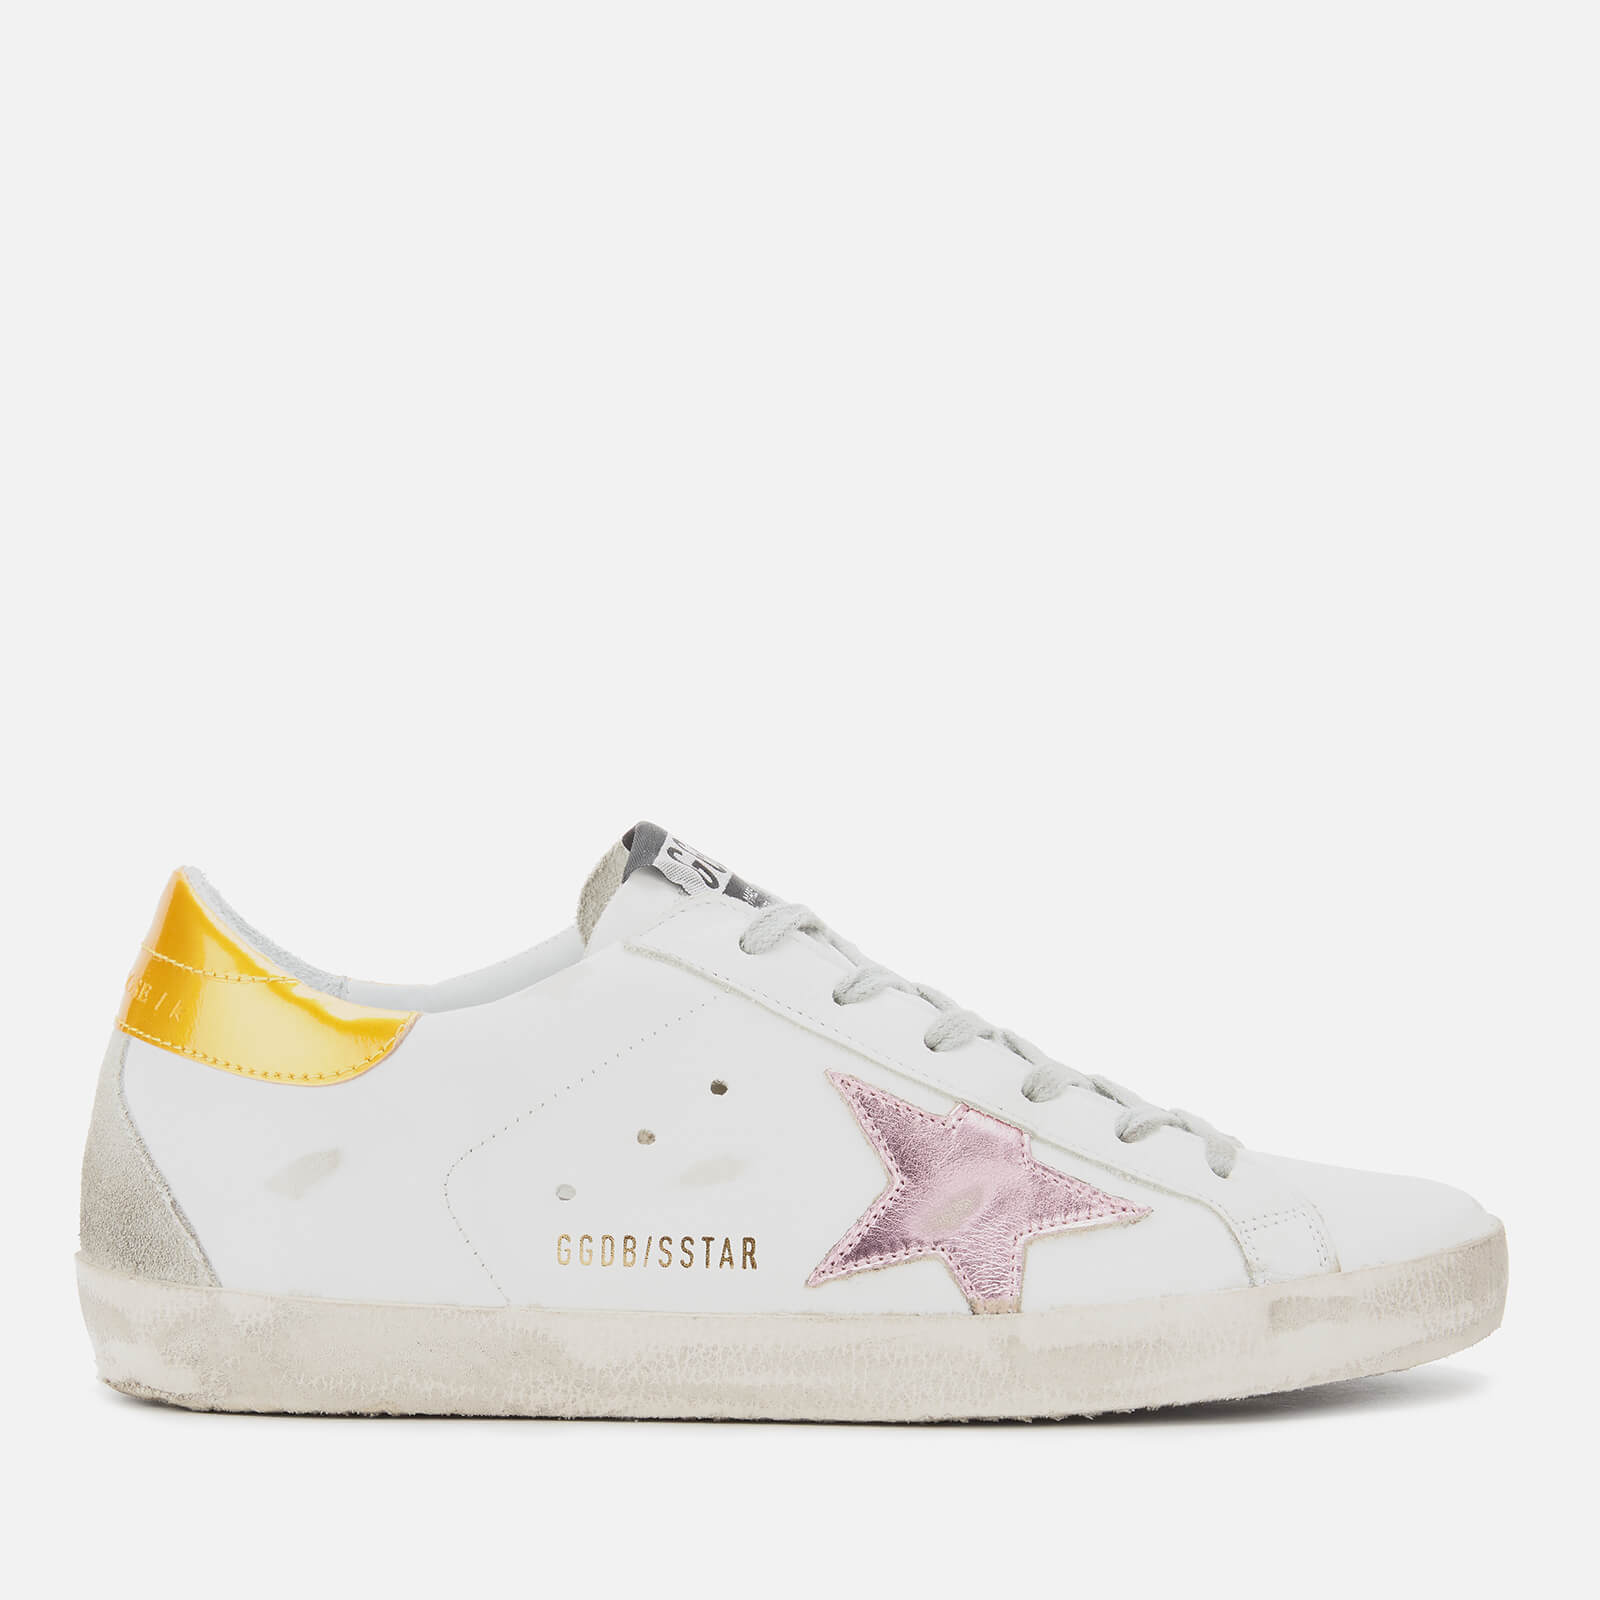 Golden Goose Deluxe Brand Women's Superstar Trainers - White Leather/Gold Pink Metallic Star